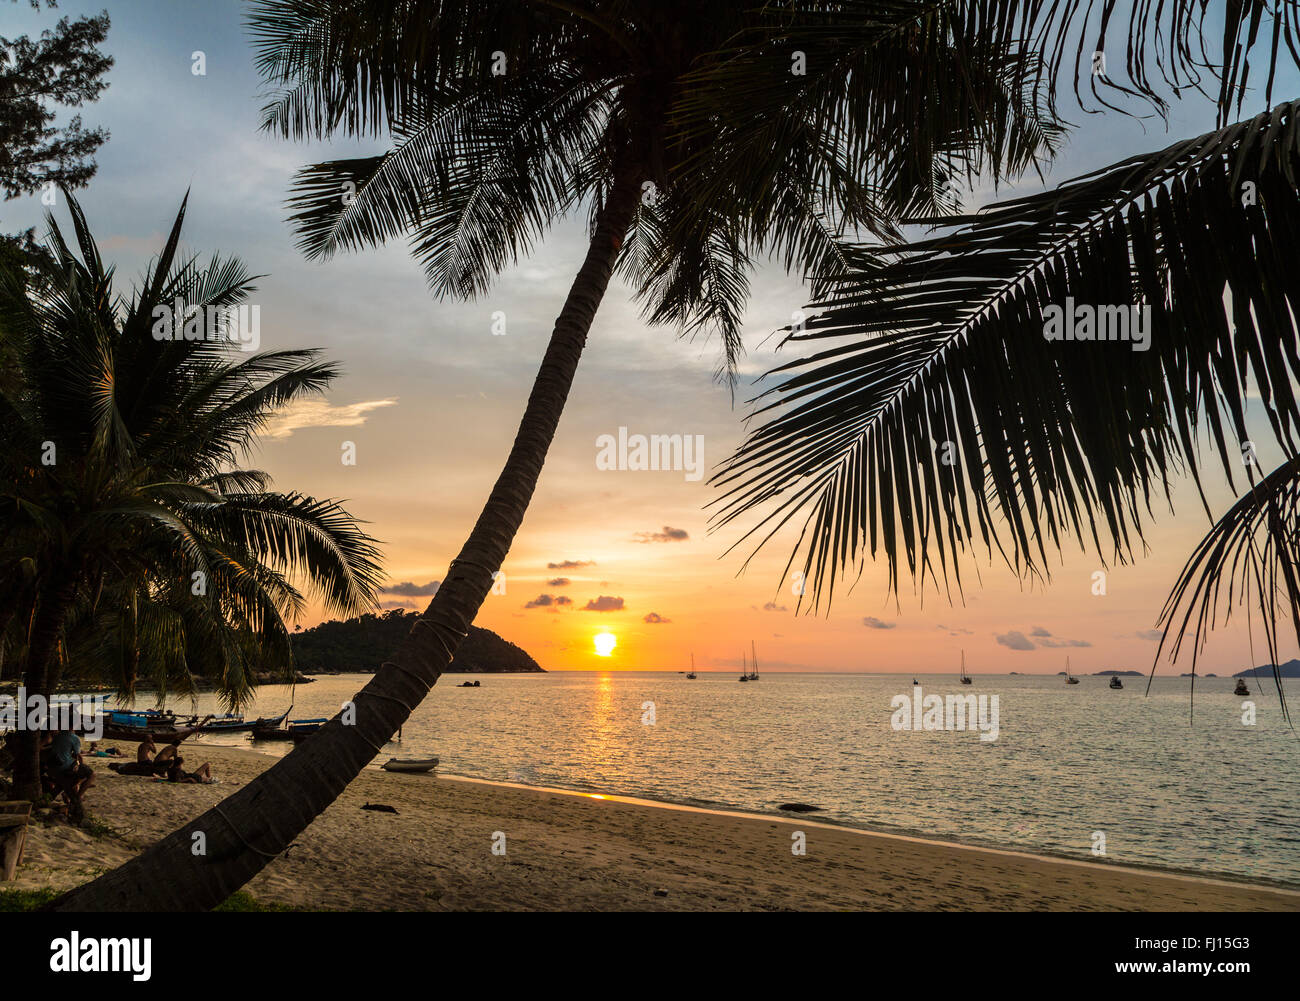 Sunset over a lonely beach in Koh Lipe island in the Andaman sea in south Thailand. - Stock Image